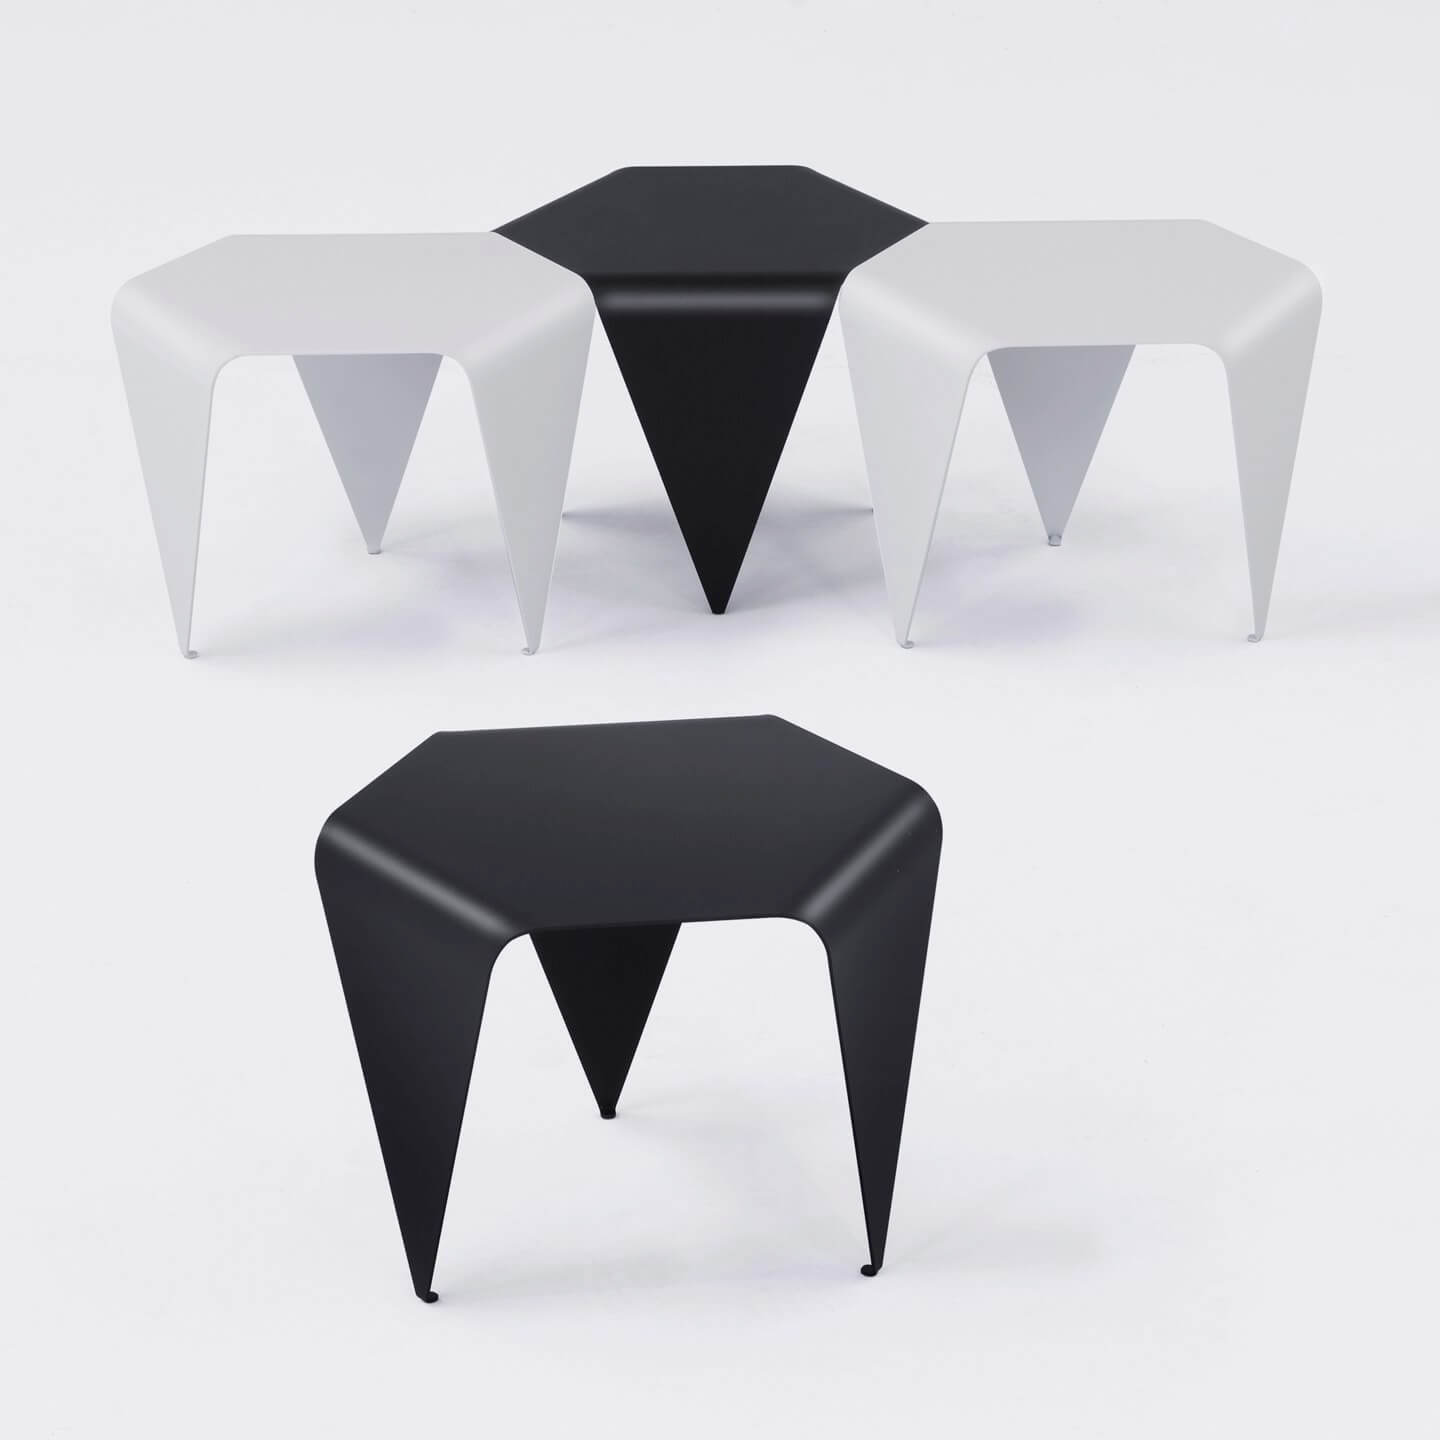 furniture-remix-bee-the-hansen-family-1